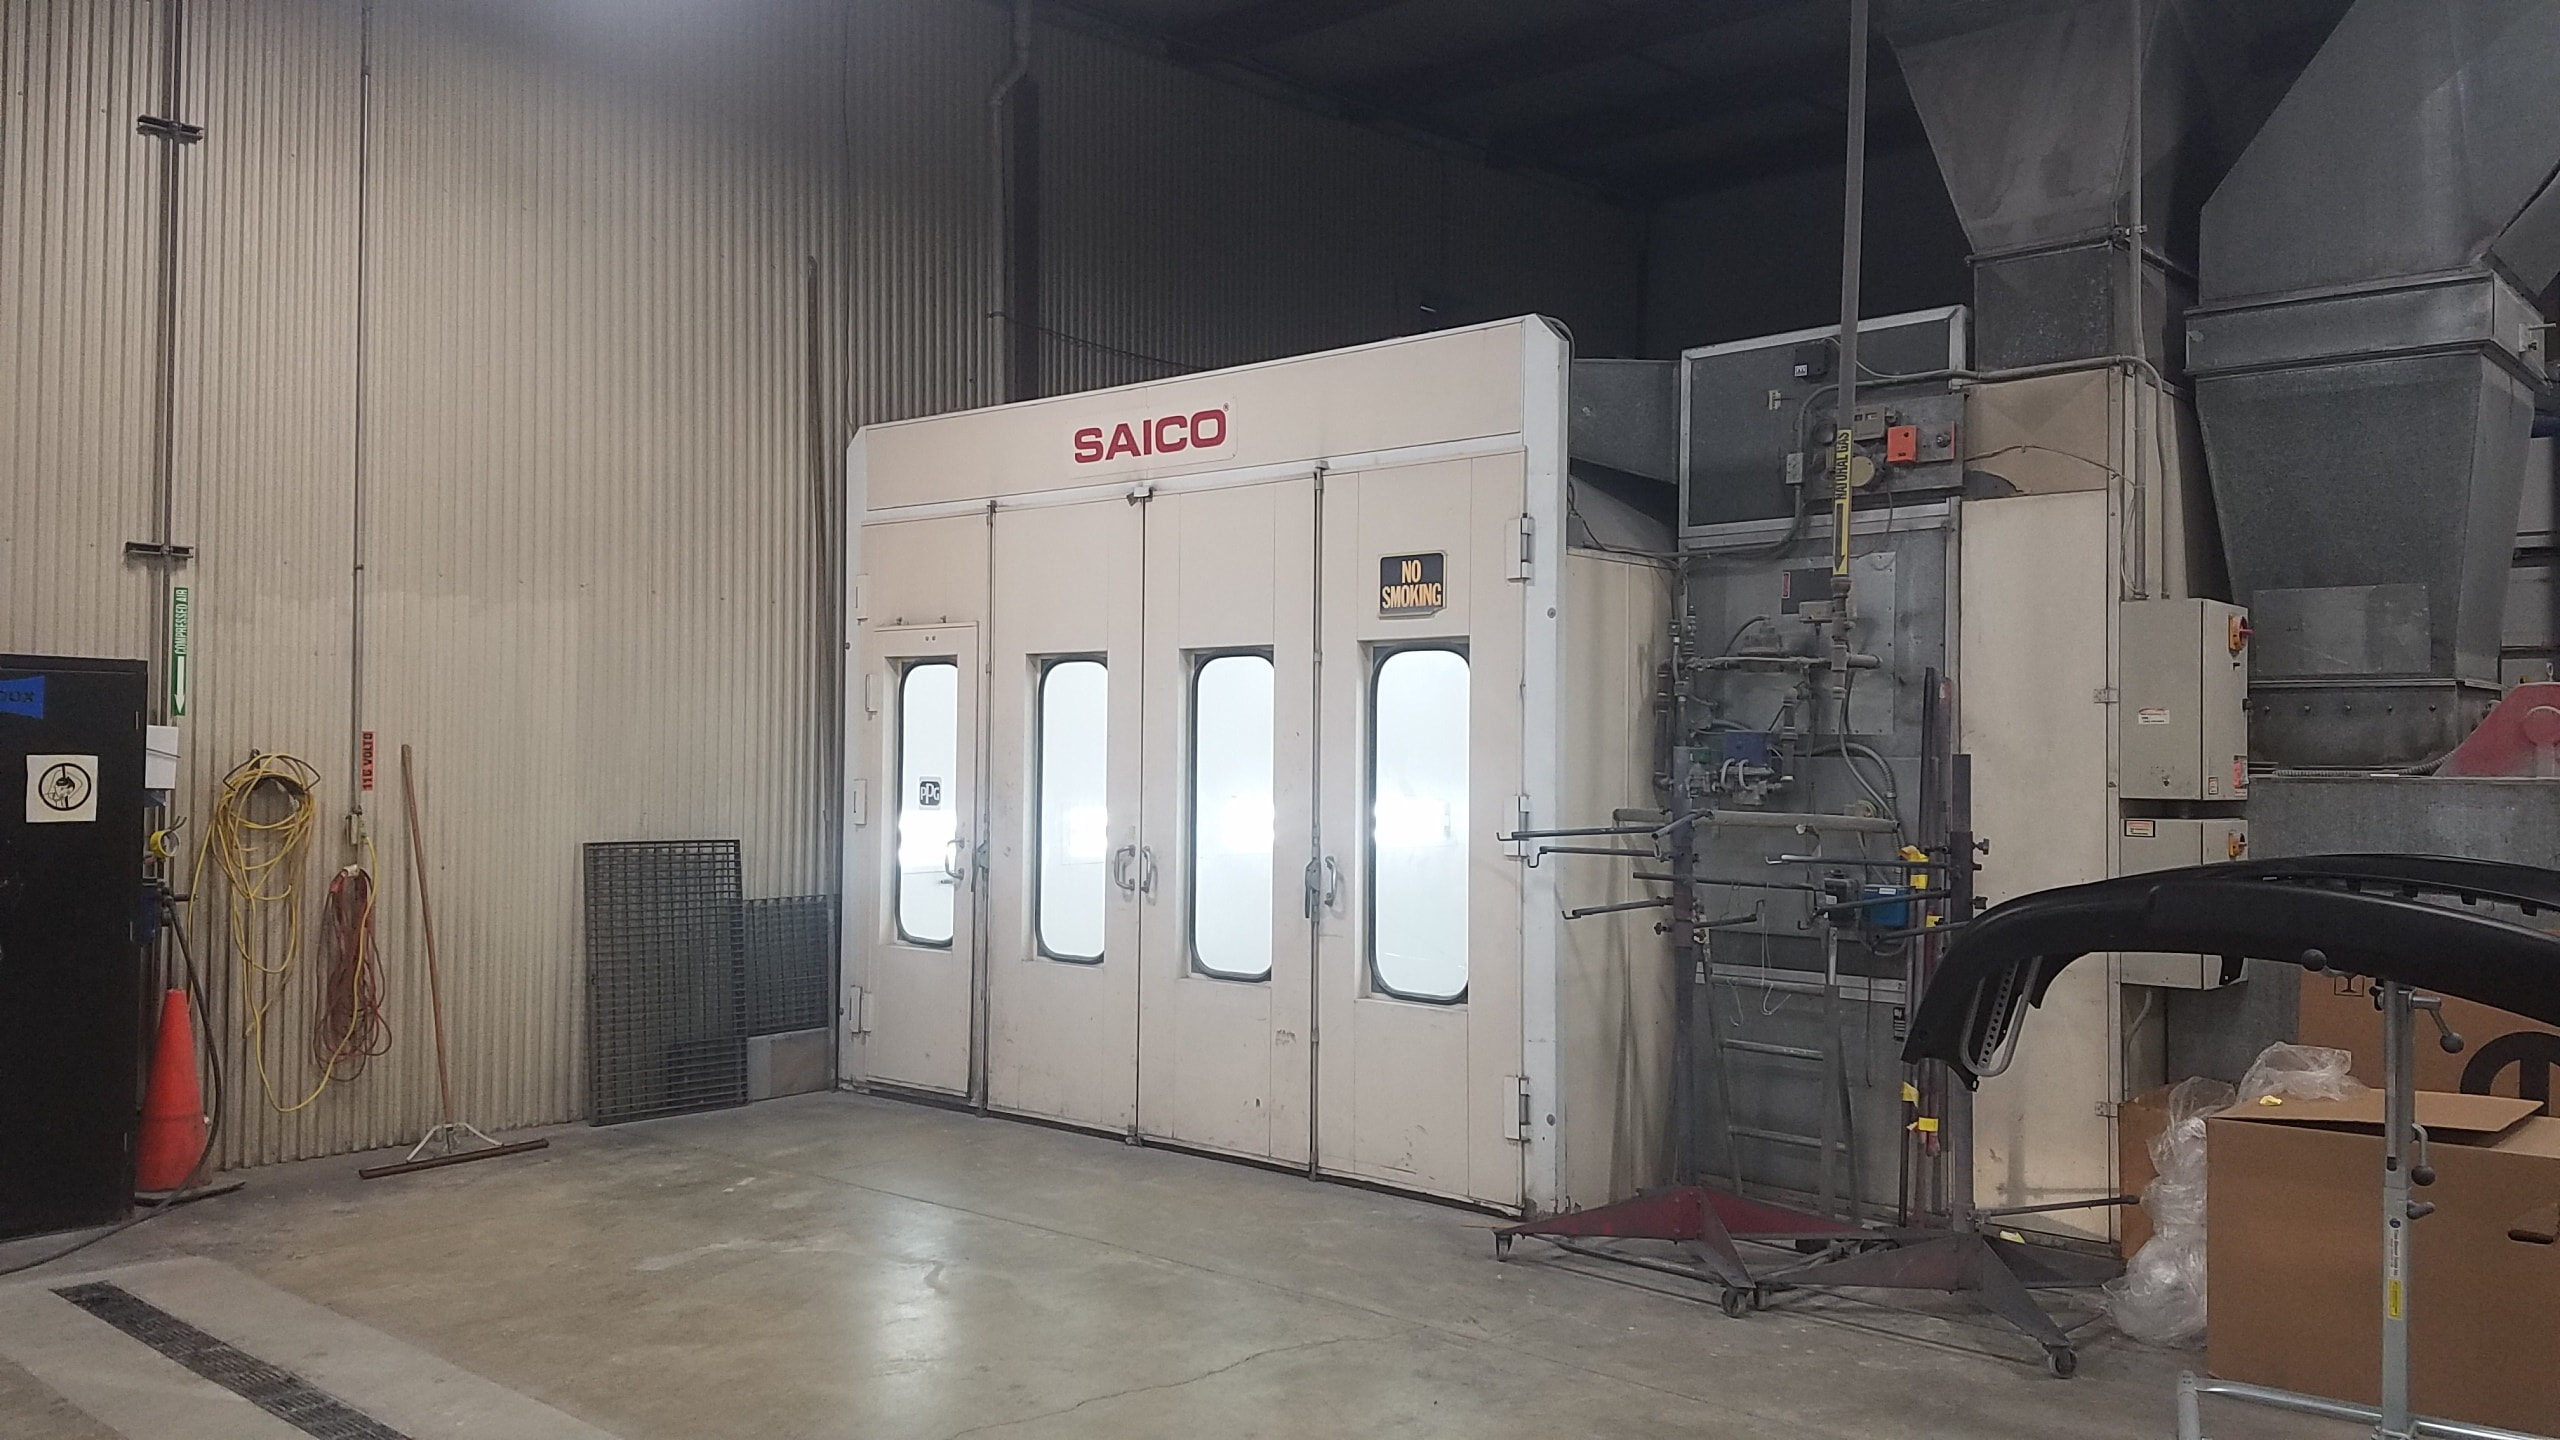 Saico Paint Booth at Stillwell Ford's Body Shop